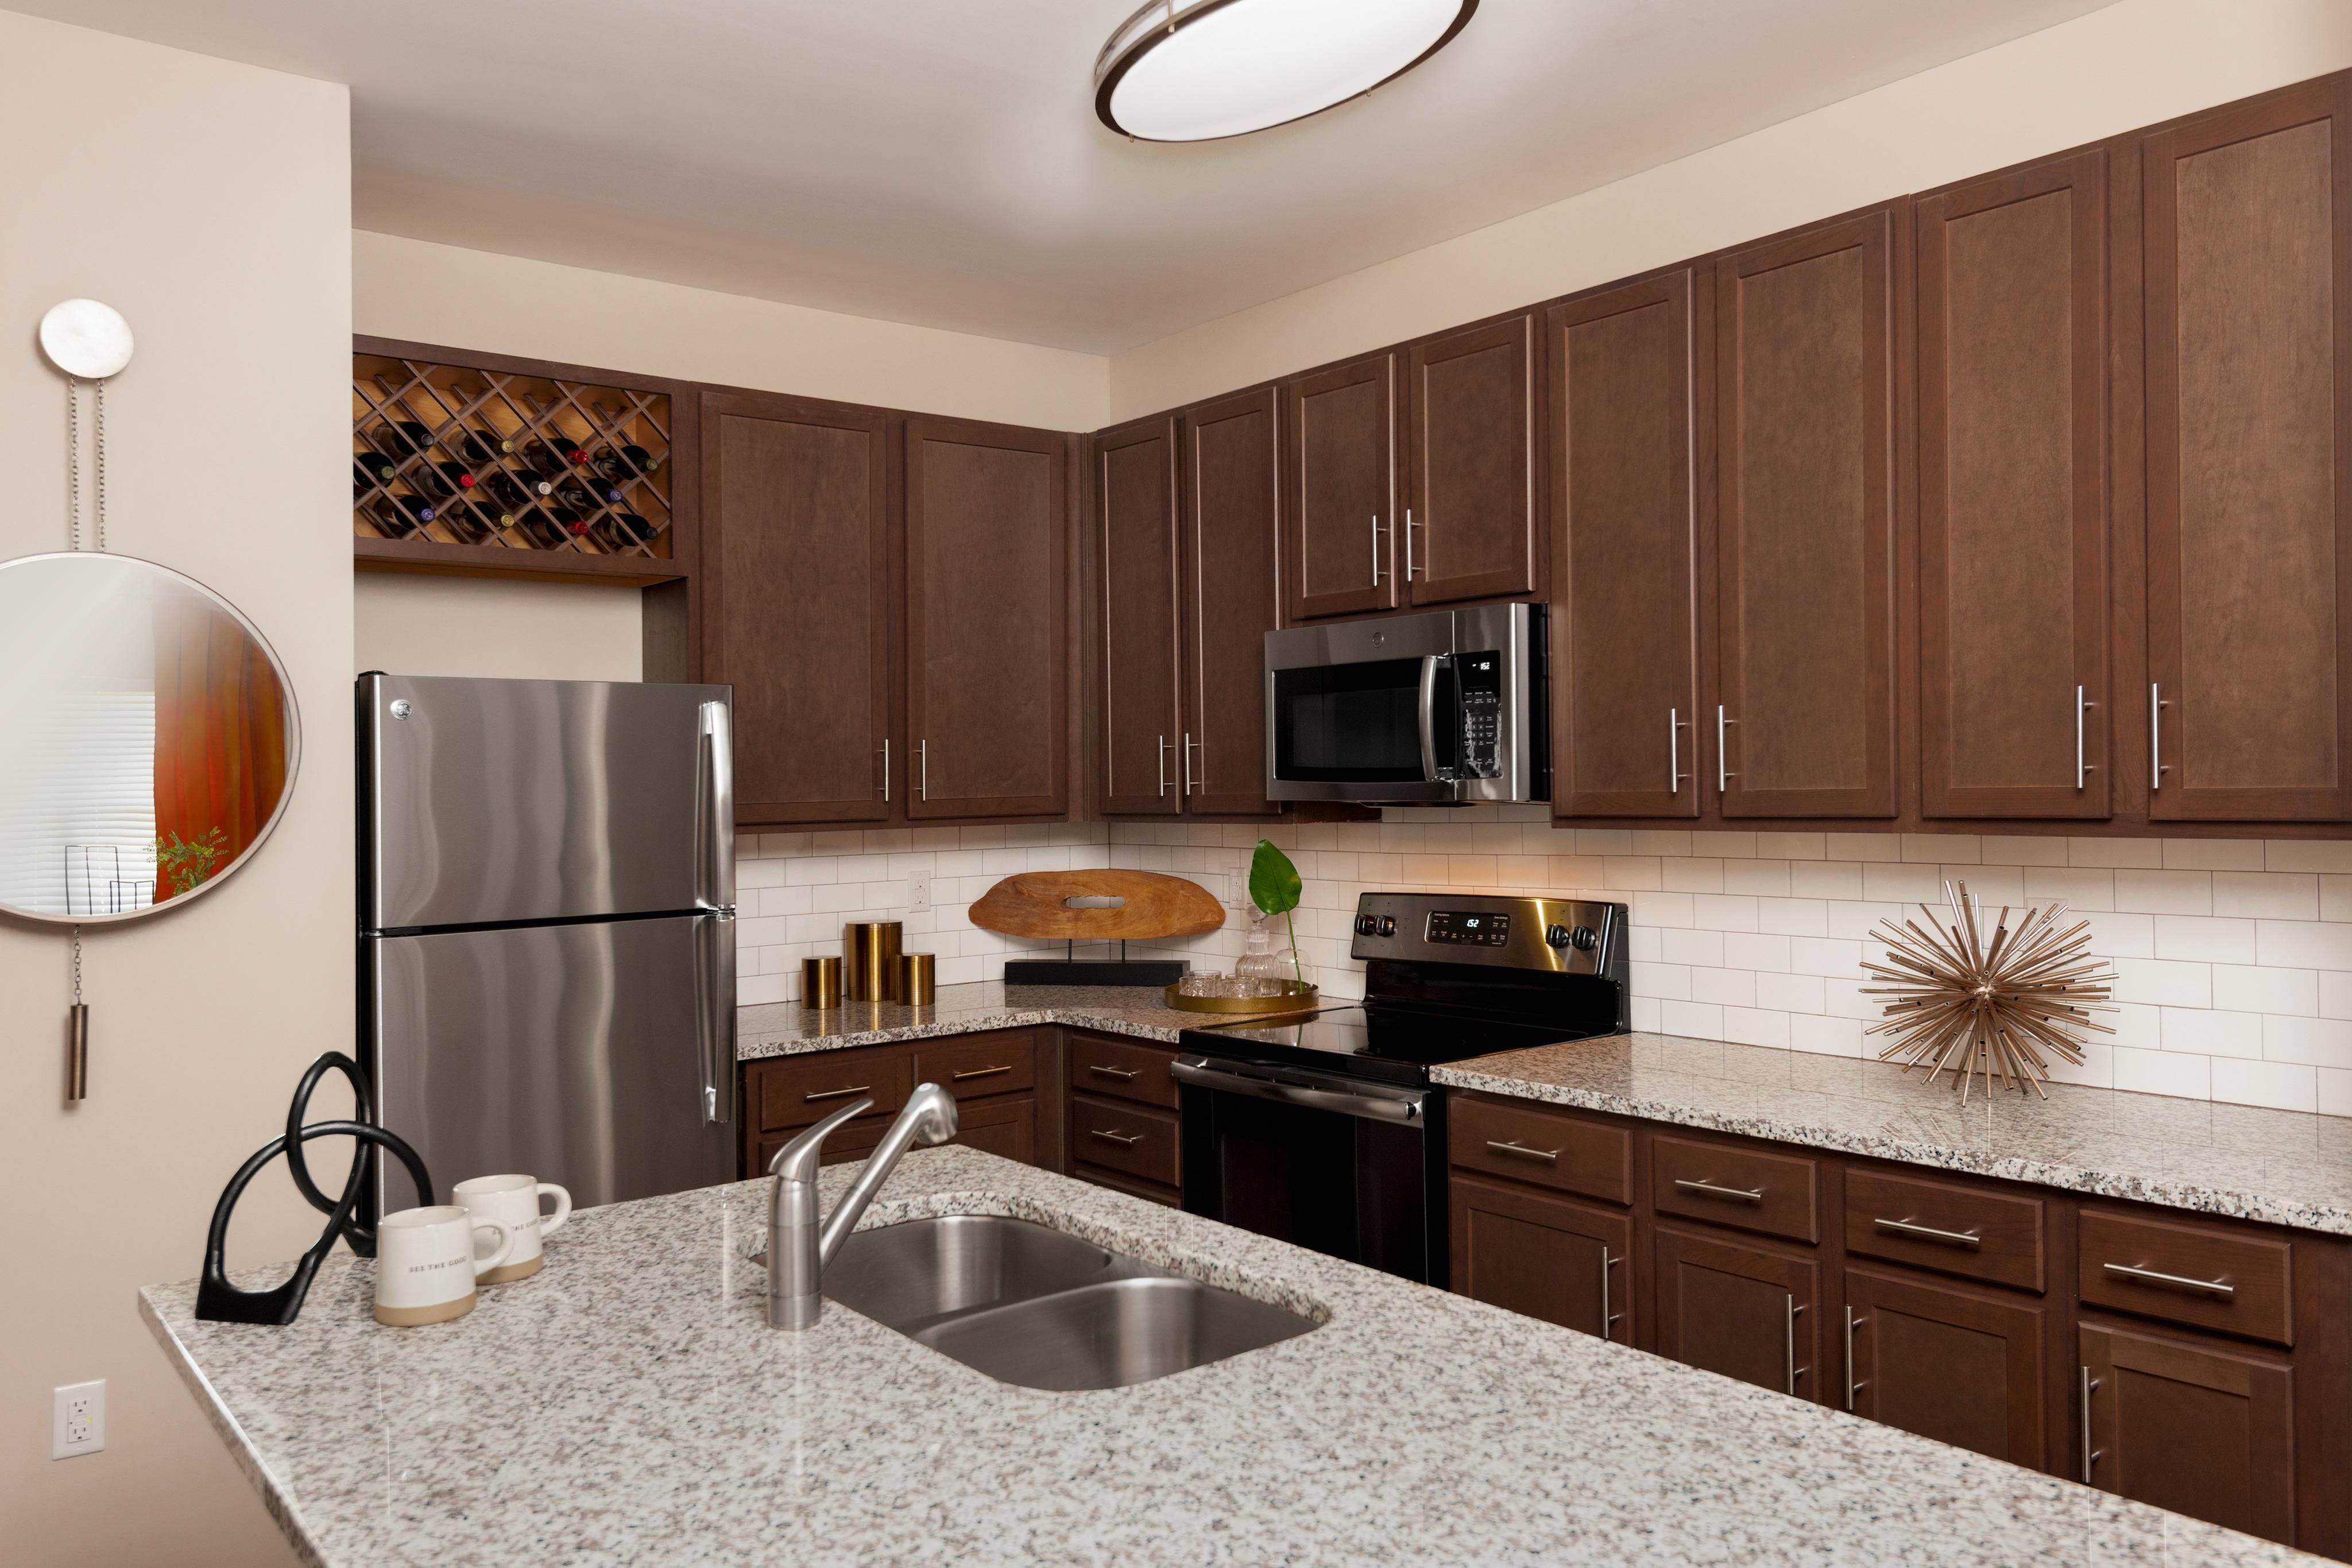 Gourmet Kitchen with Custom Cabinetry and Granite Countertops